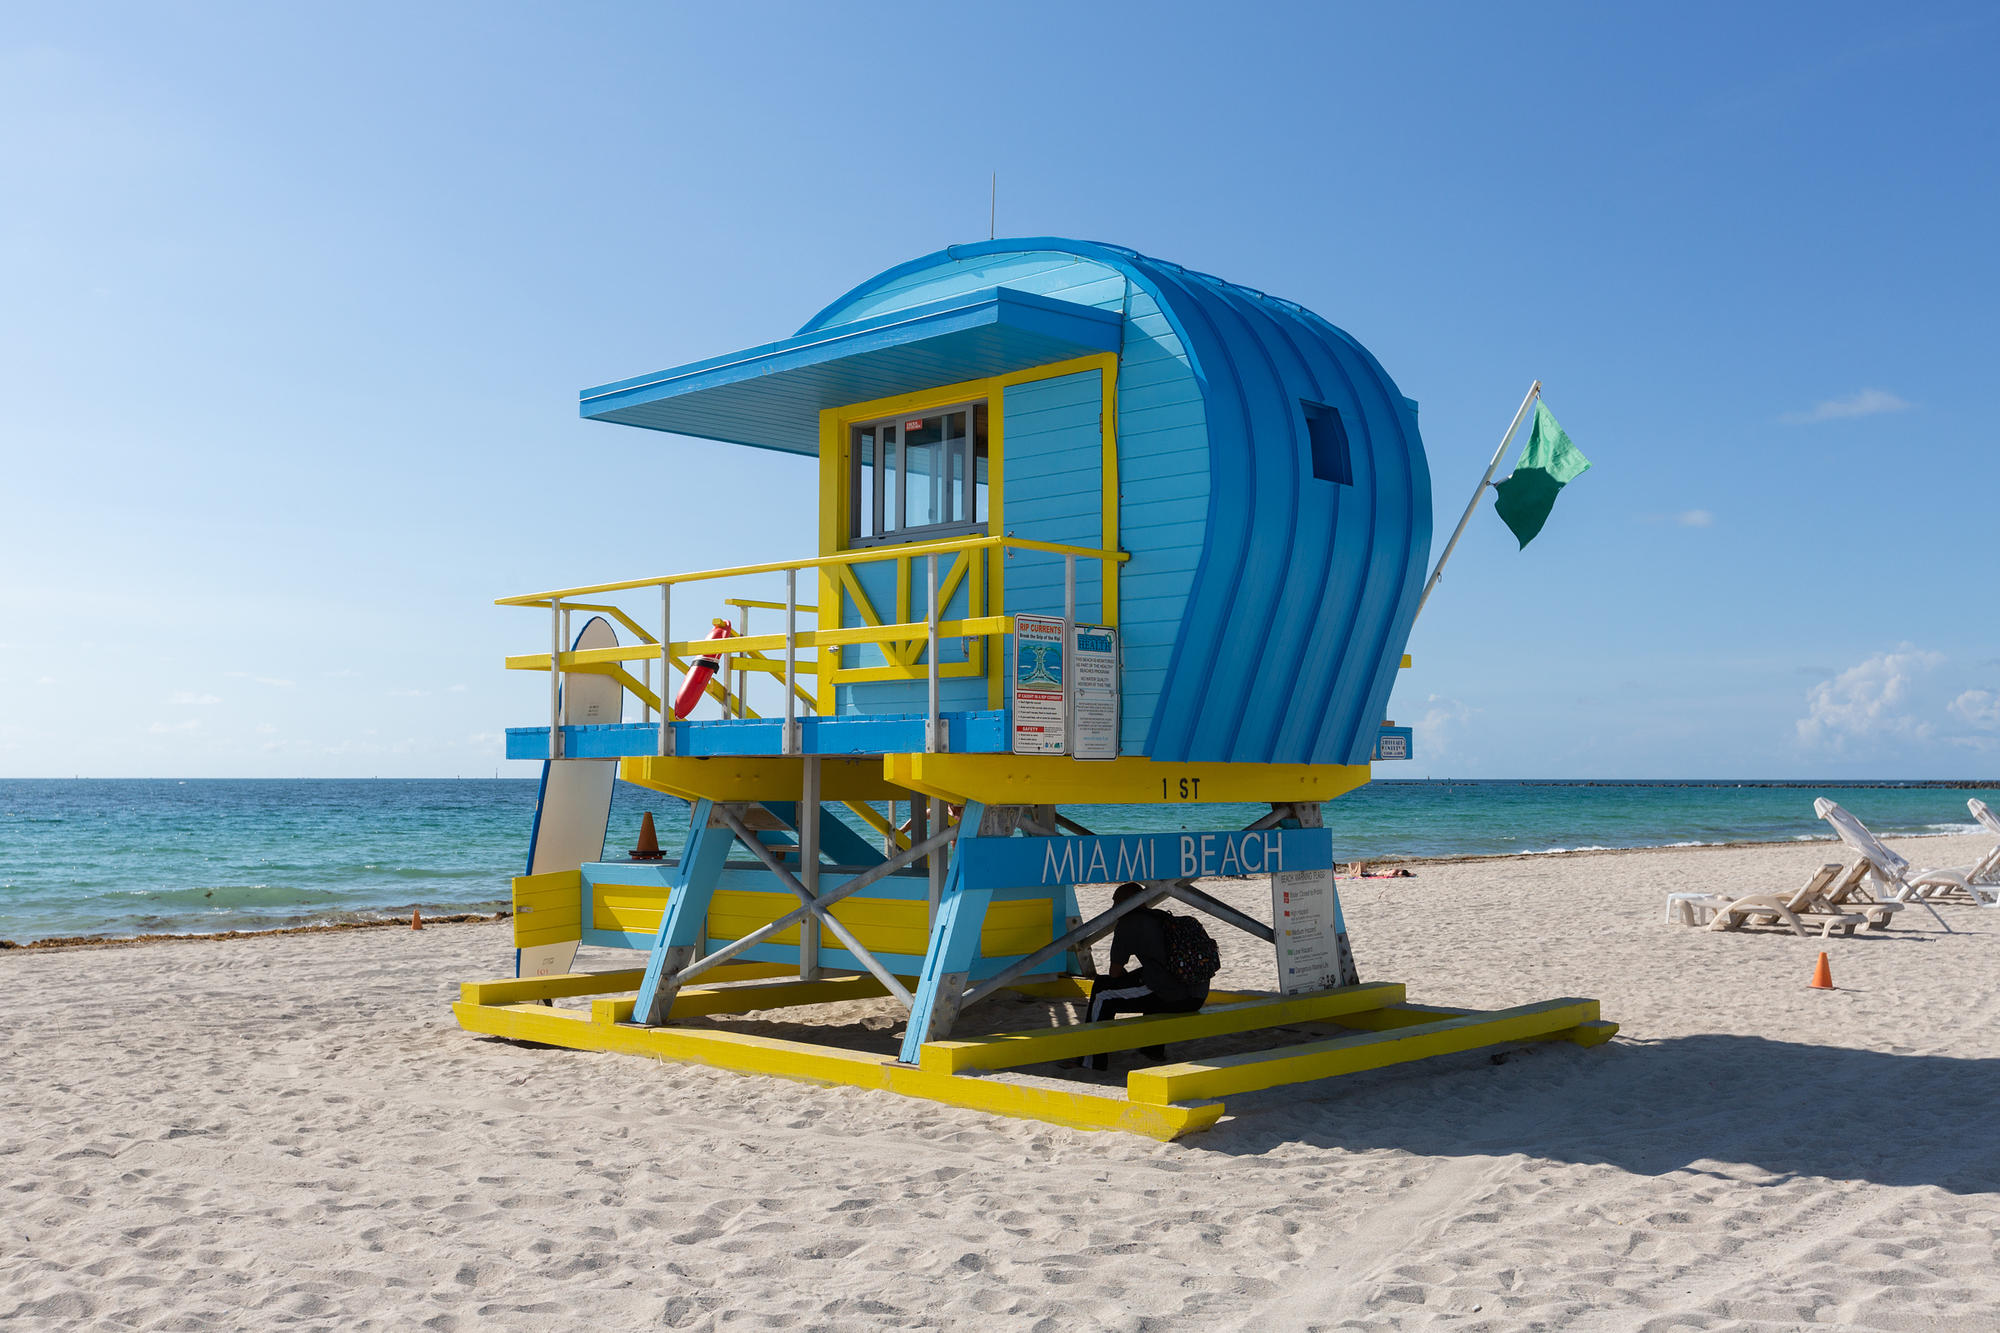 Lifeguard tower on the beach in Miami